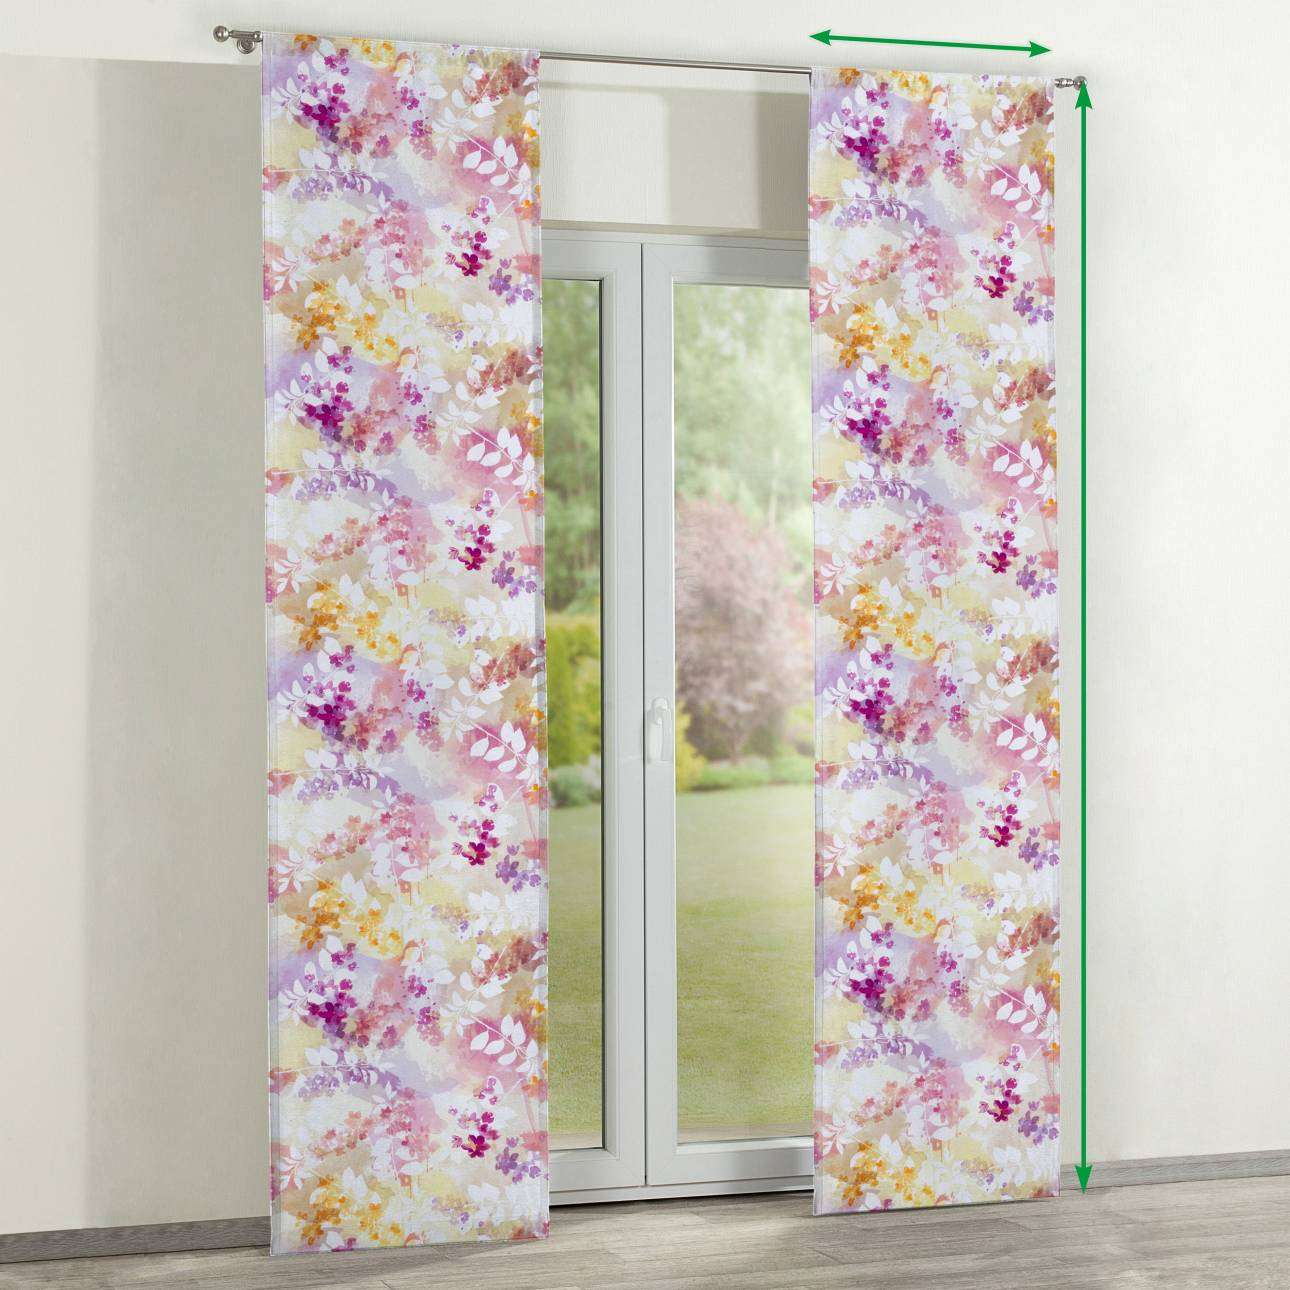 Slot panel curtains – Set of 2 in collection Monet, fabric: 140-05